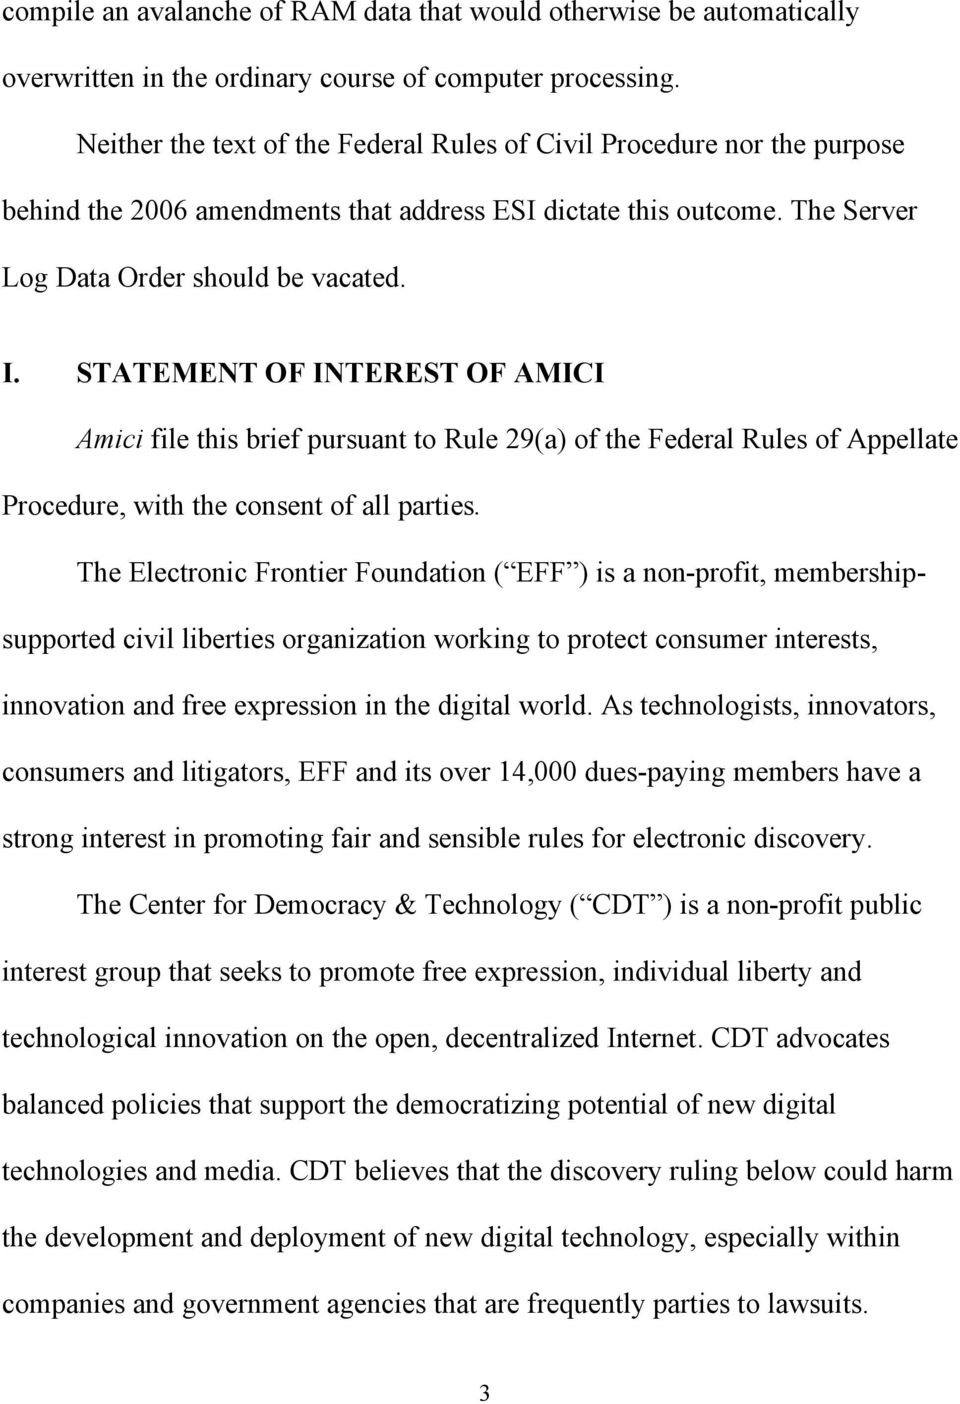 STATEMENT OF INTEREST OF AMICI Amici file this brief pursuant to Rule 29(a) of the Federal Rules of Appellate Procedure, with the consent of all parties.